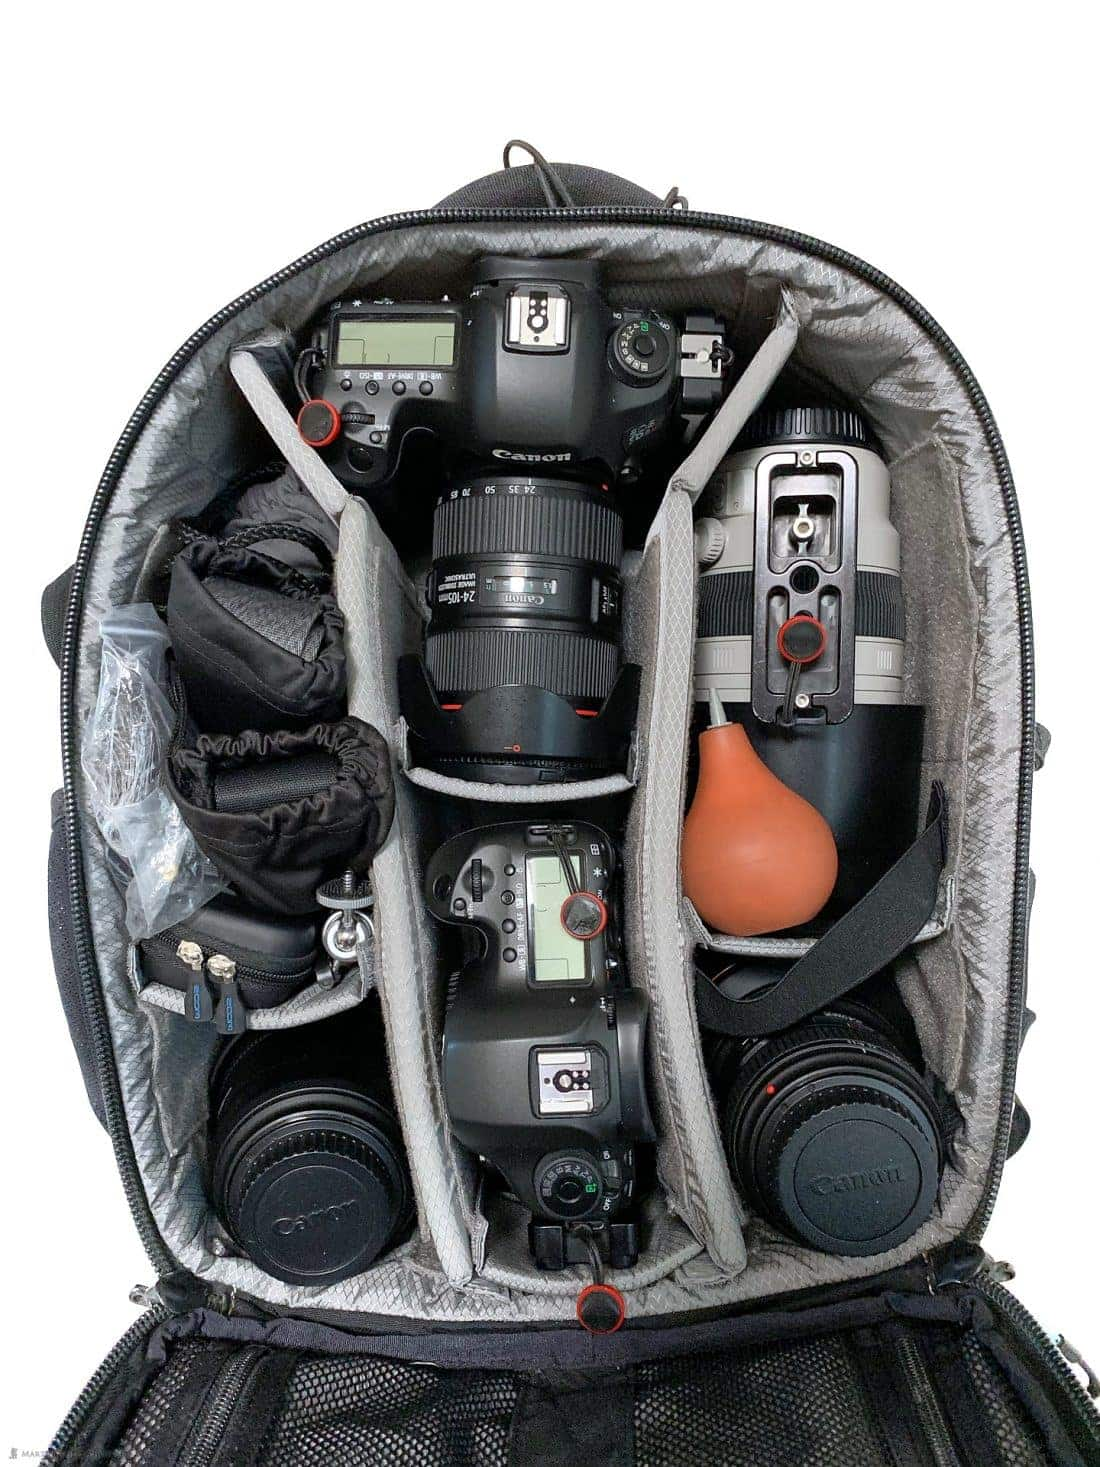 Martin's Travel Camera Bag Packed